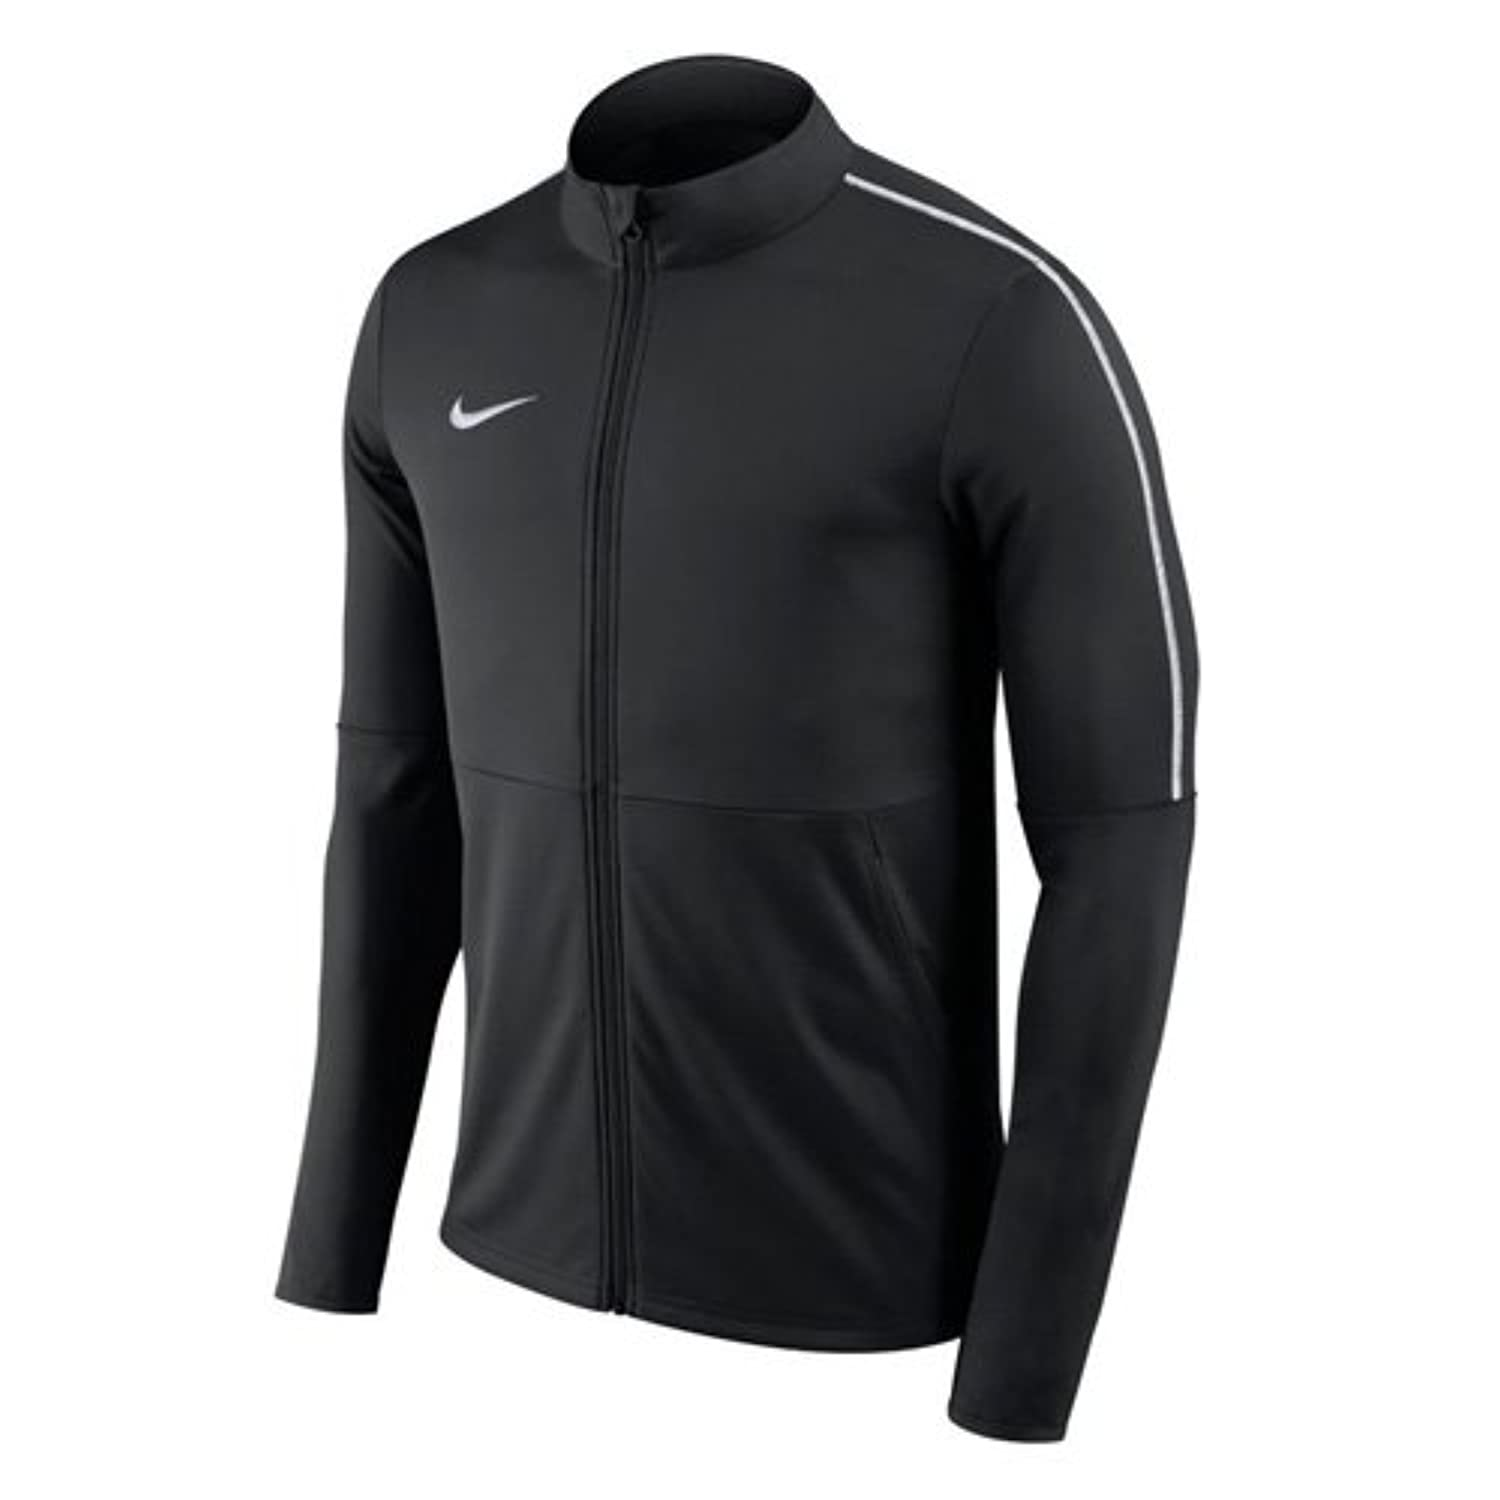 NIKE OUTERWEAR ボーイズ